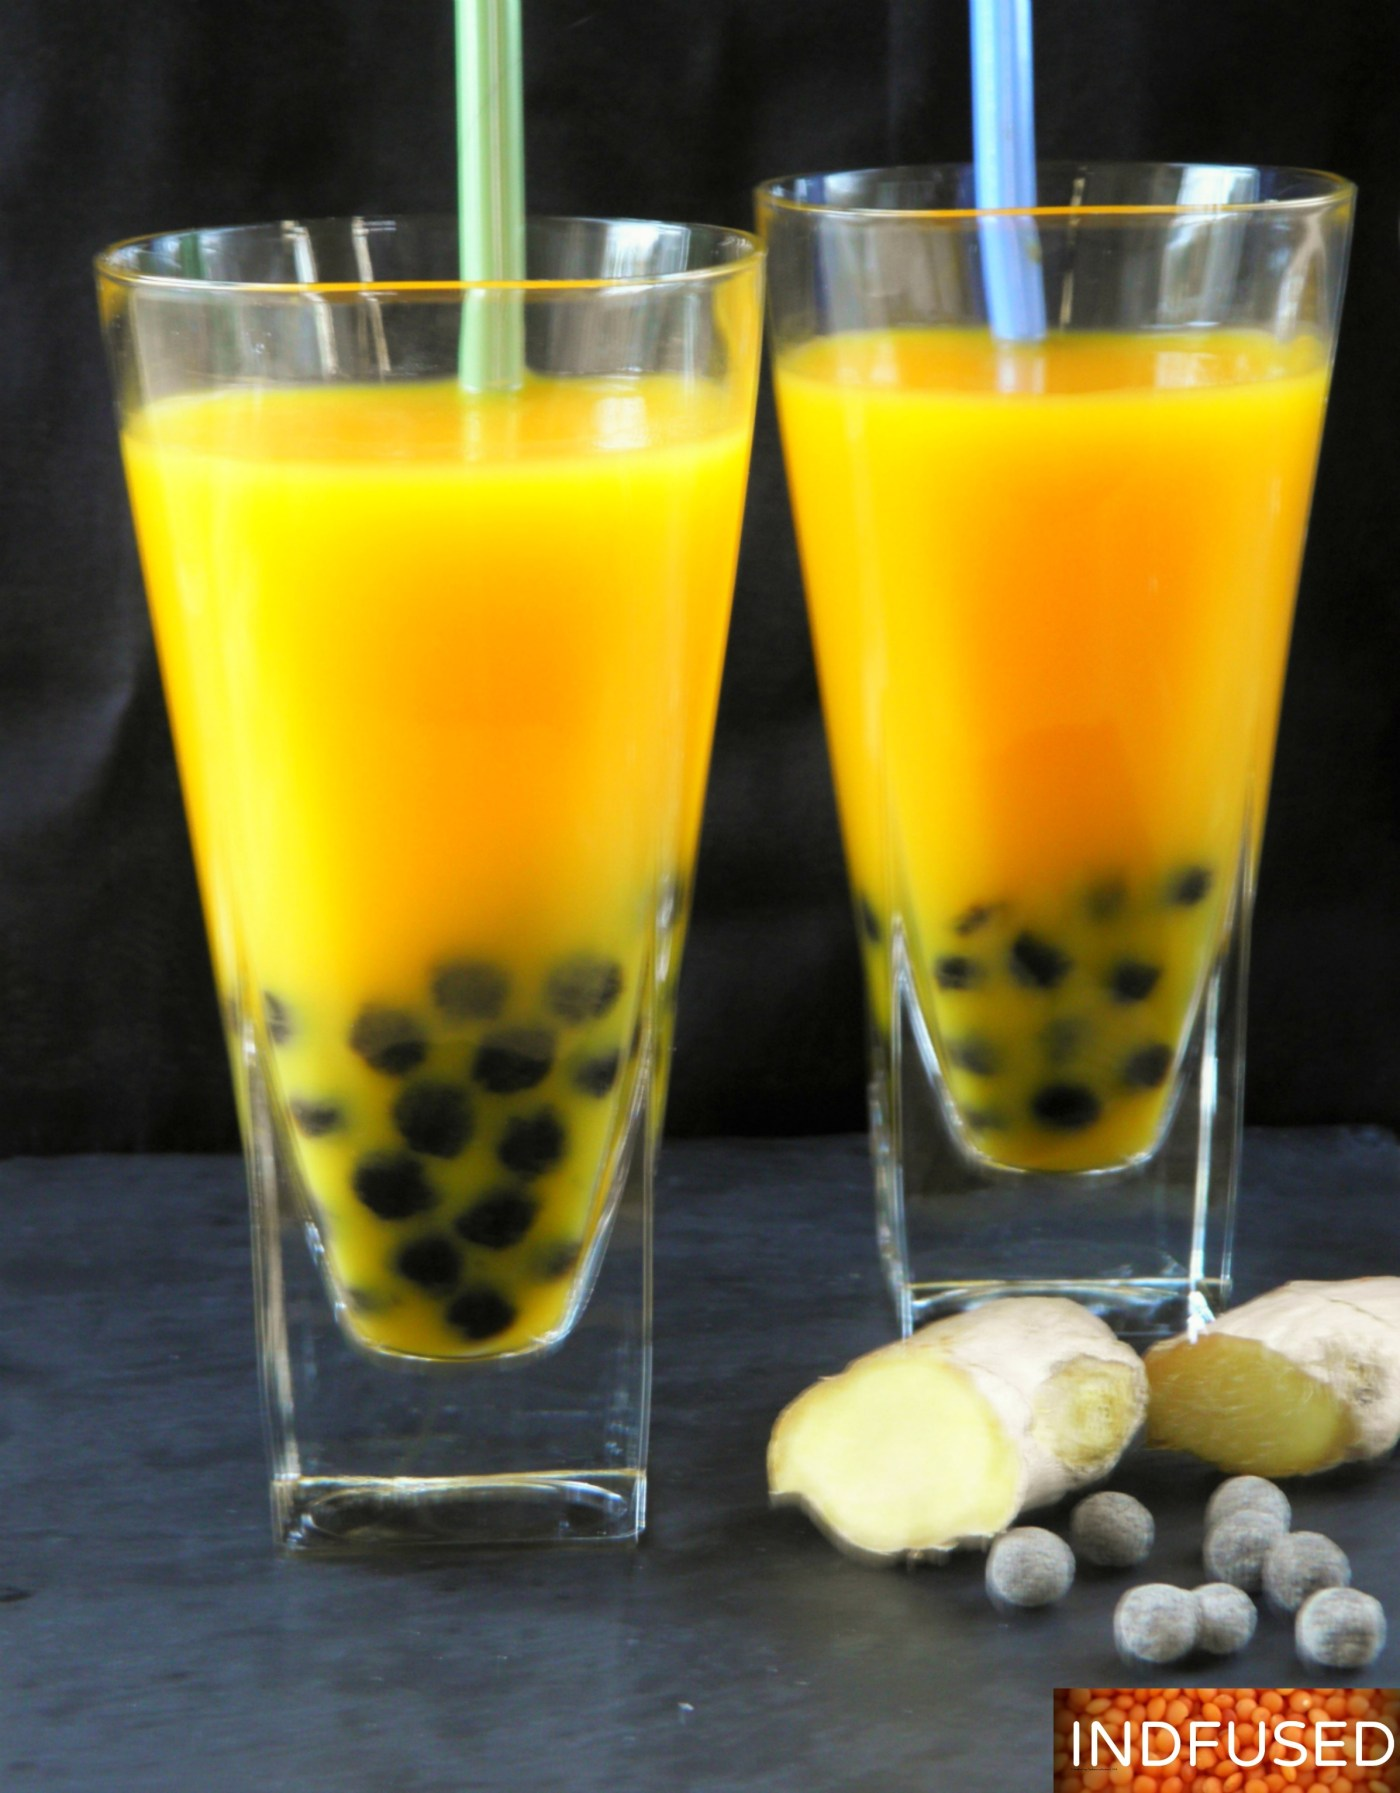 Healthy recipe for Gluten free boba combined with mango, ginger,green tea and Stevia, is a cool summer drink!